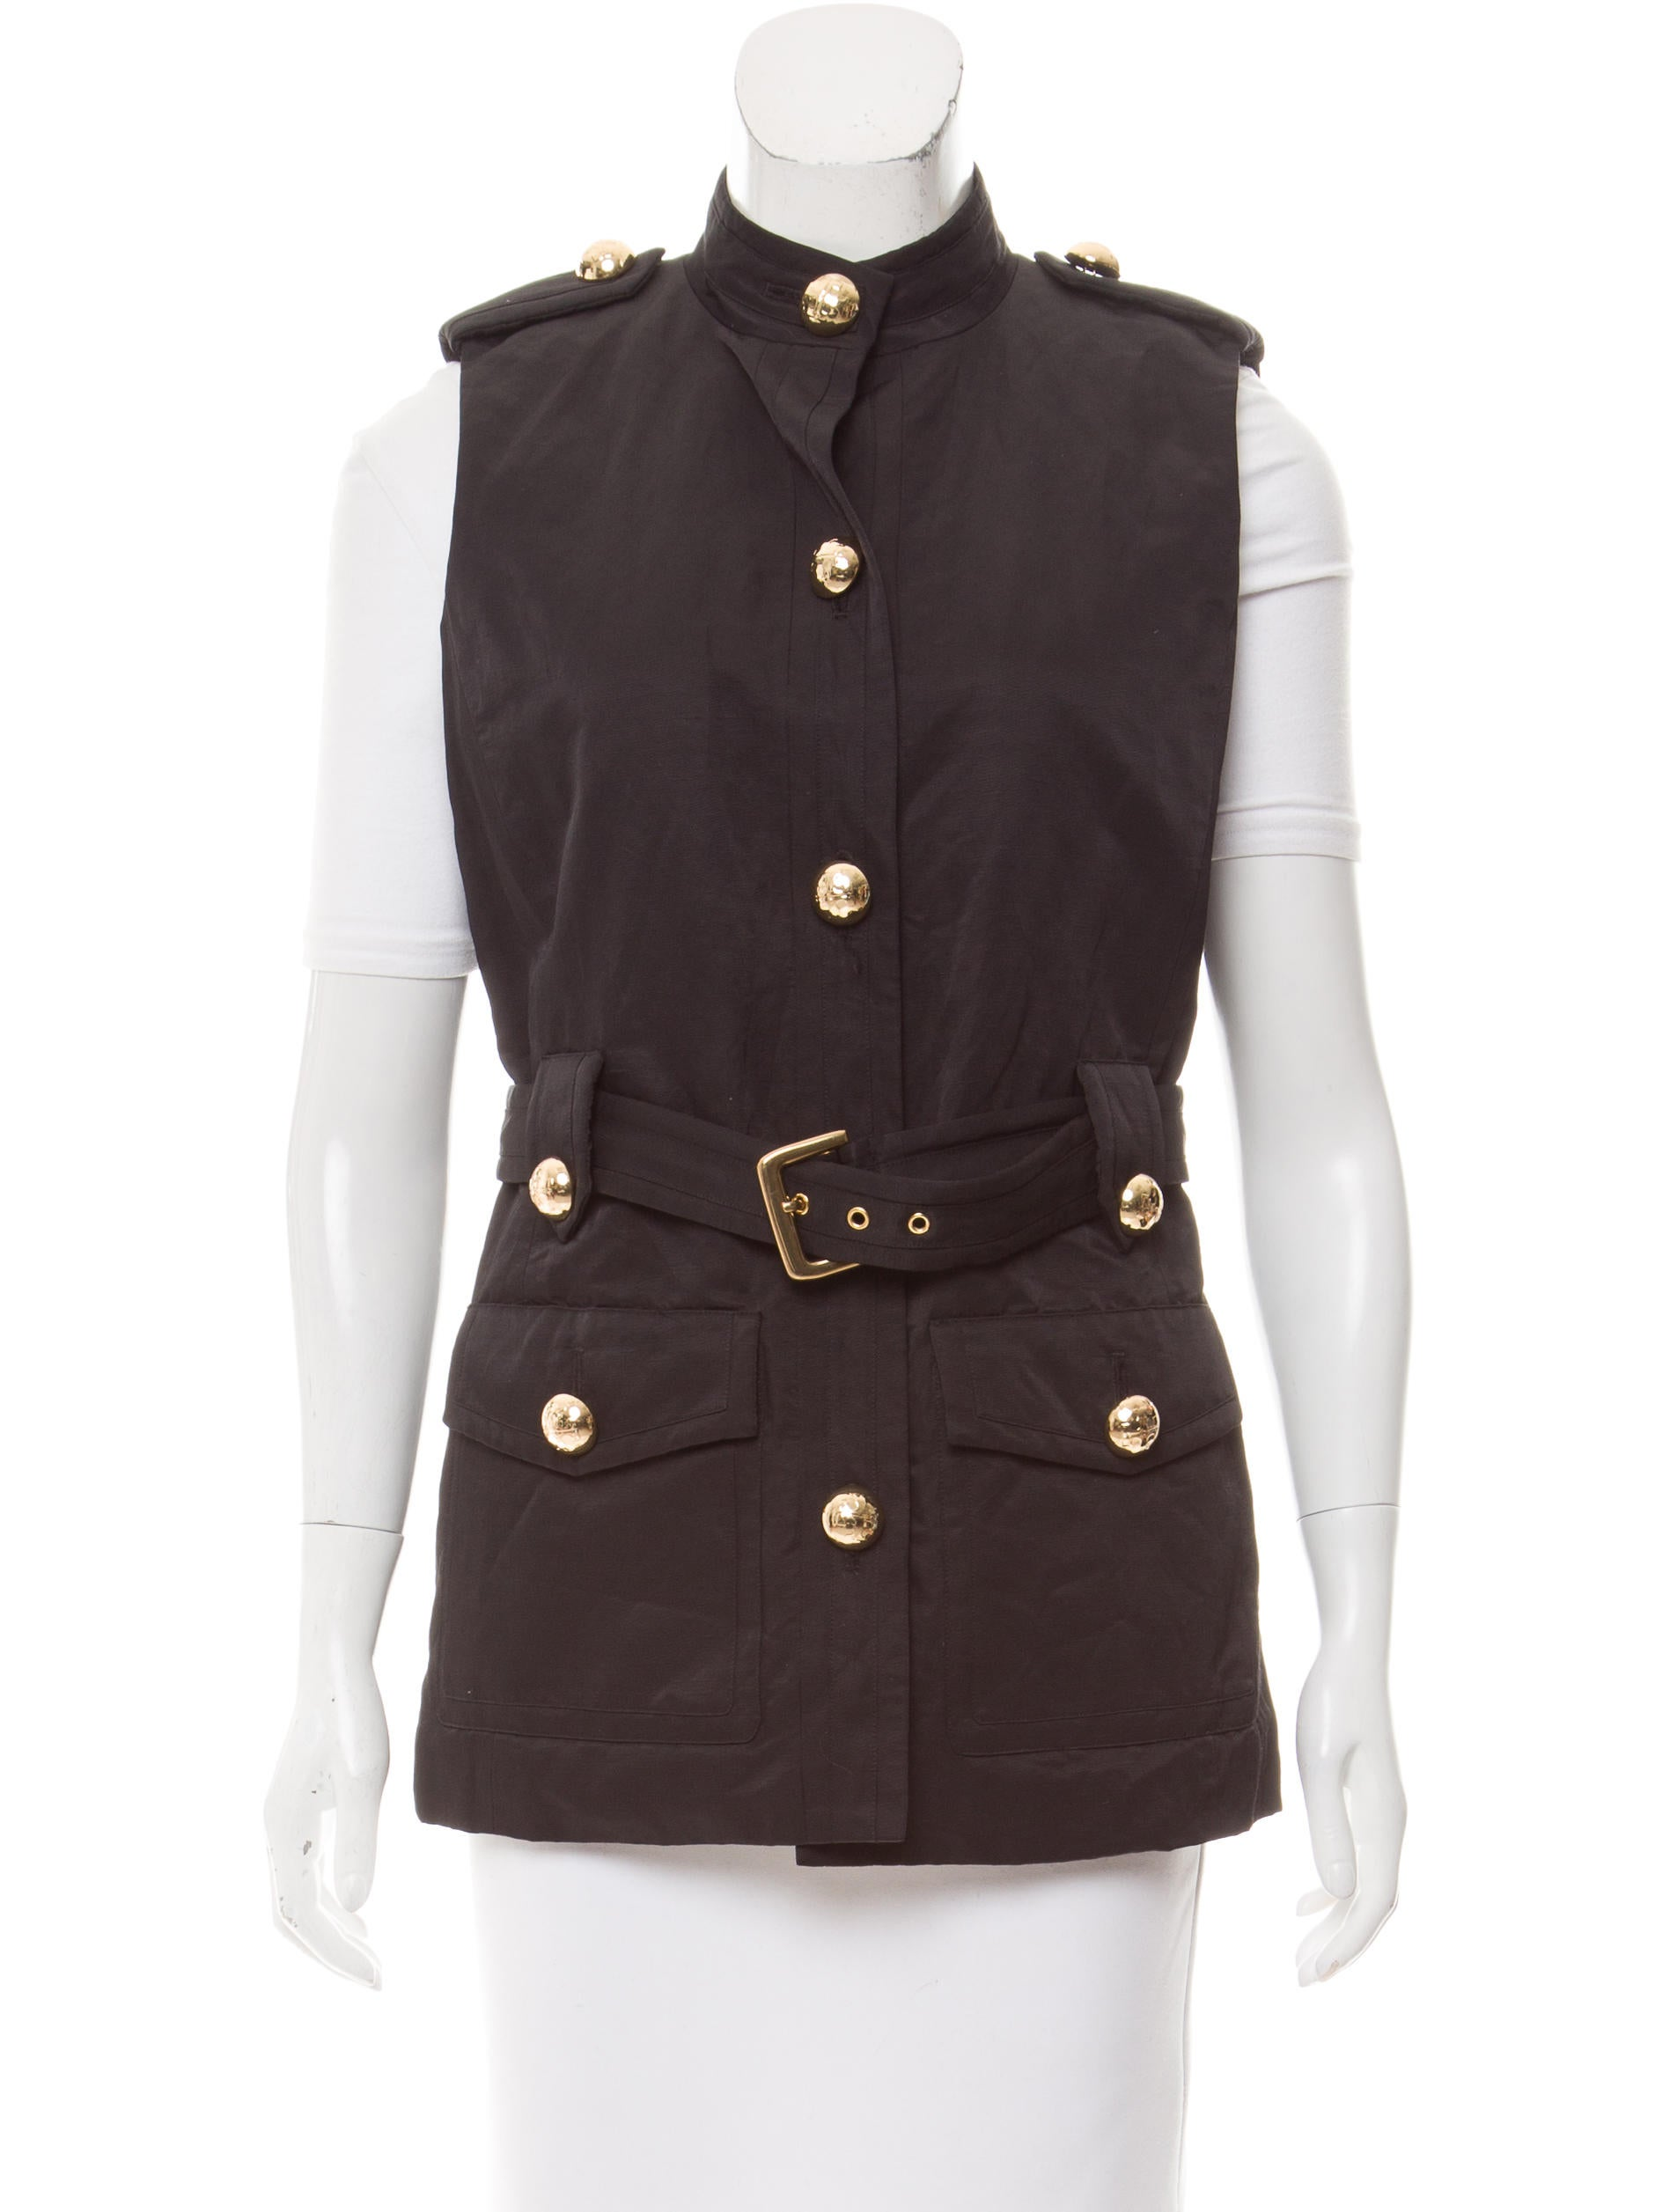 Tory Burch Casual Button Up Vest Clothing Wto109236